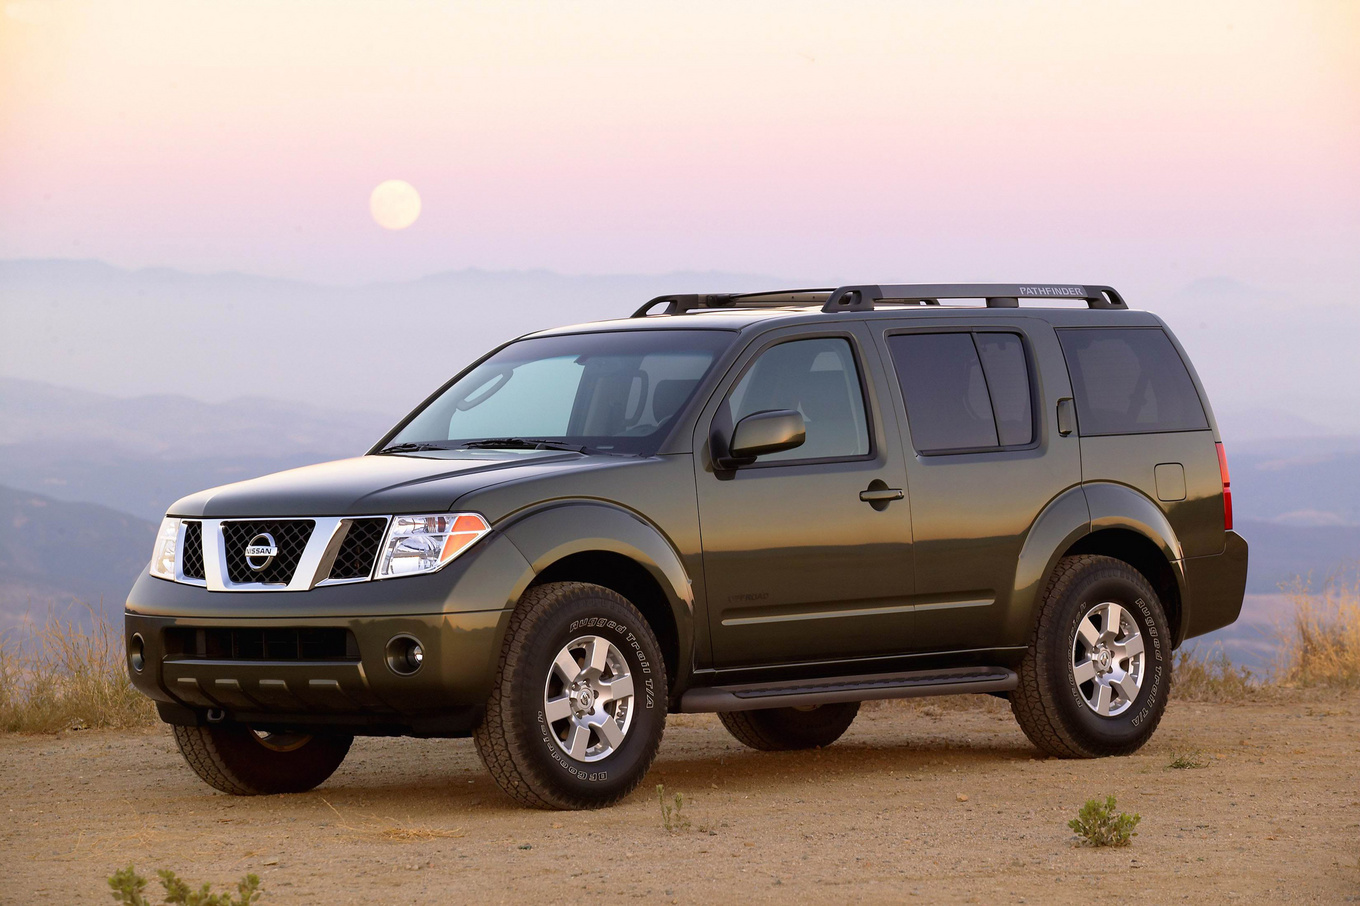 Nissan patfinder photo - 4